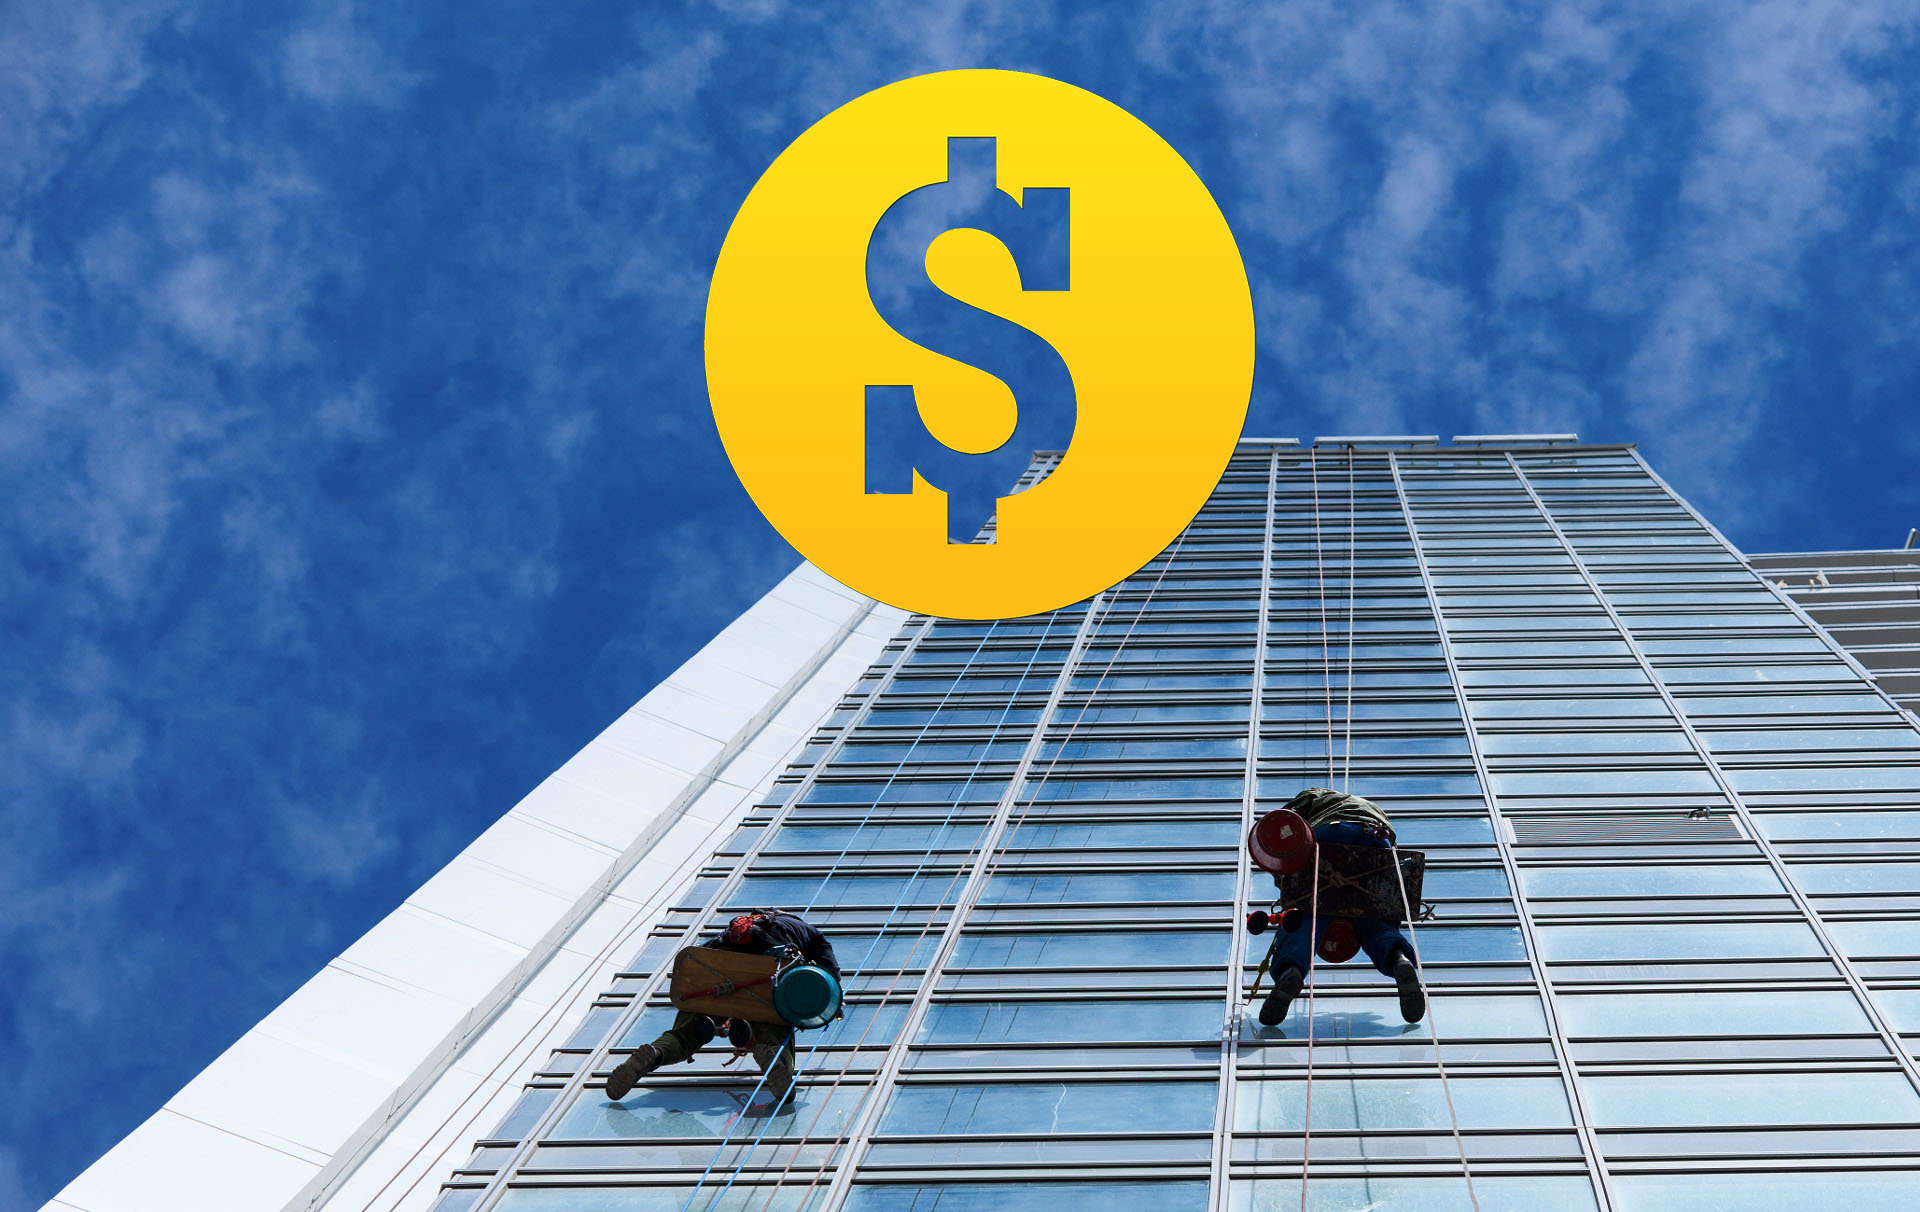 Average Window Cleaner Cost for 2019